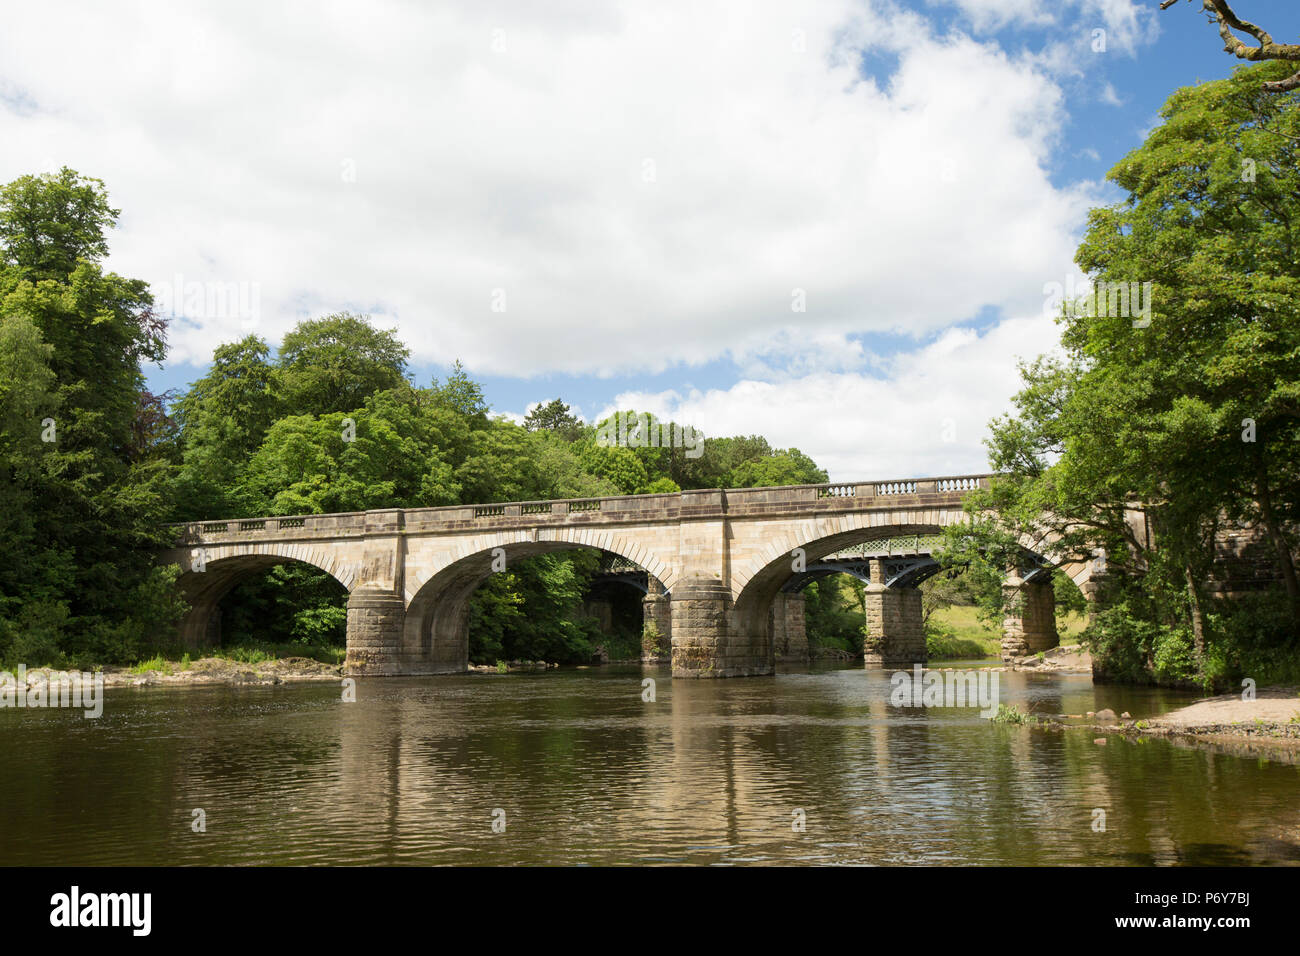 Two bridges at the River Lune at the Crook O'Lune near Caton. The nearest is a road bridge, the furthest is now a foot bridge. Lancashire England UK G - Stock Image